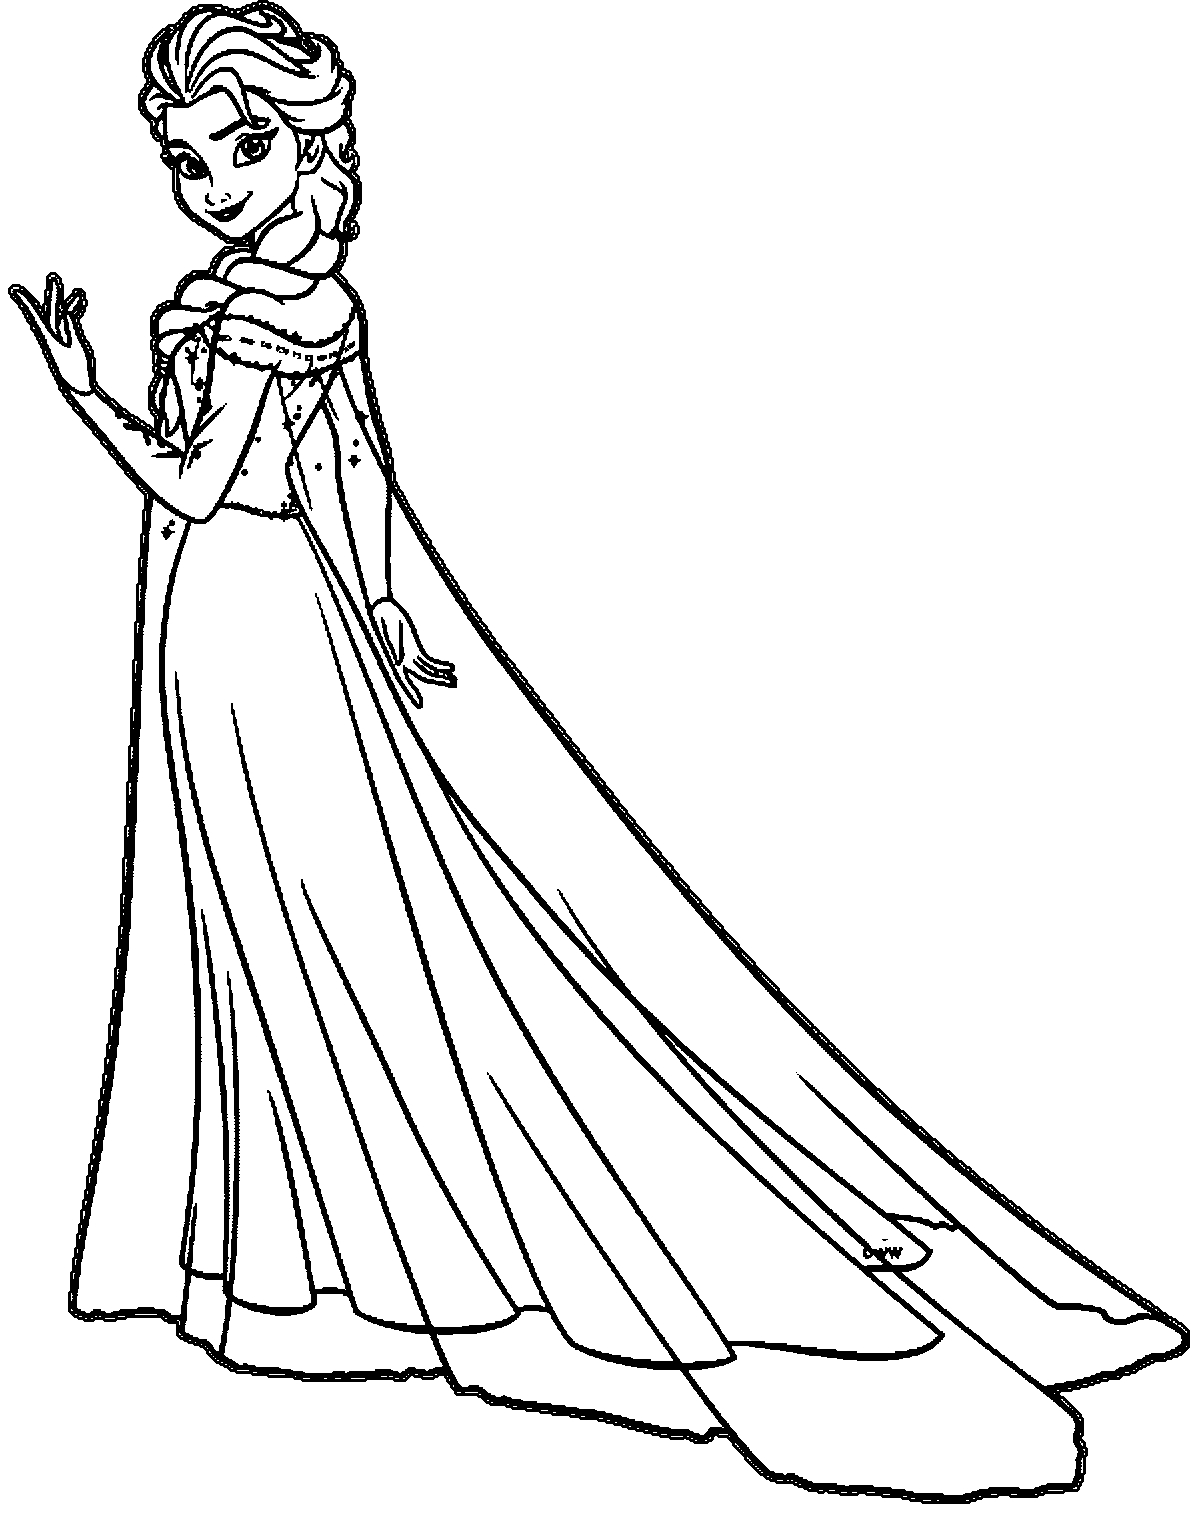 frozen anna and elsa drawing  free download on clipartmag